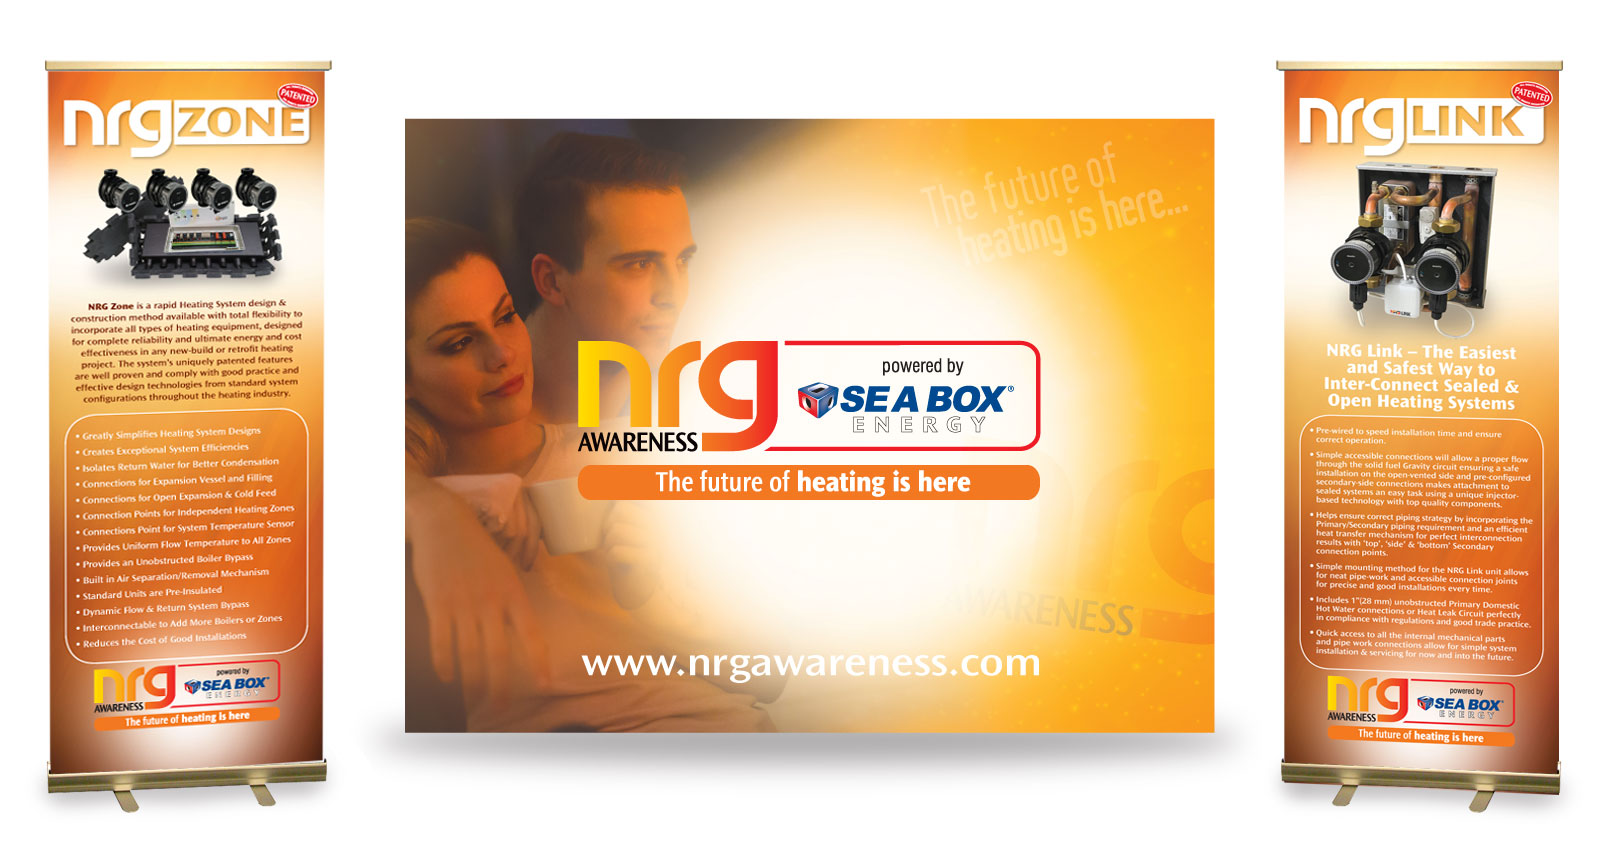 NRG Awareness Powered by Sea Box Exhibition and Pull Up Stands